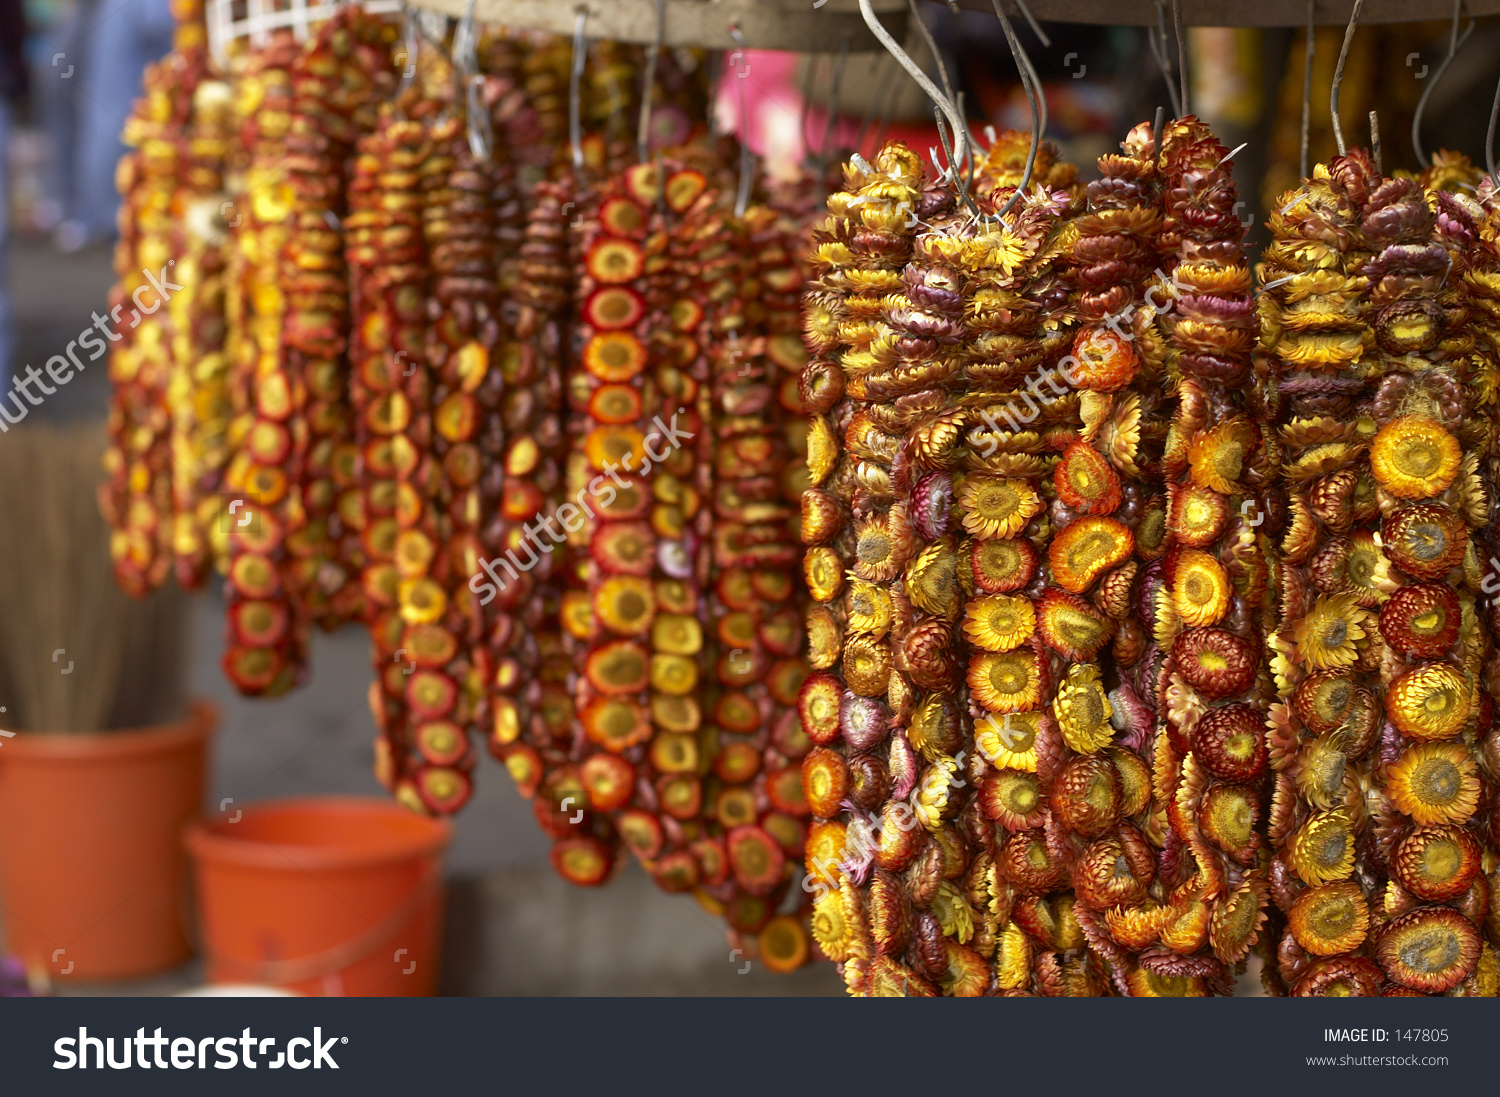 Garlands Of Dried Flowers In A Baguio Market, Philippines Stock.